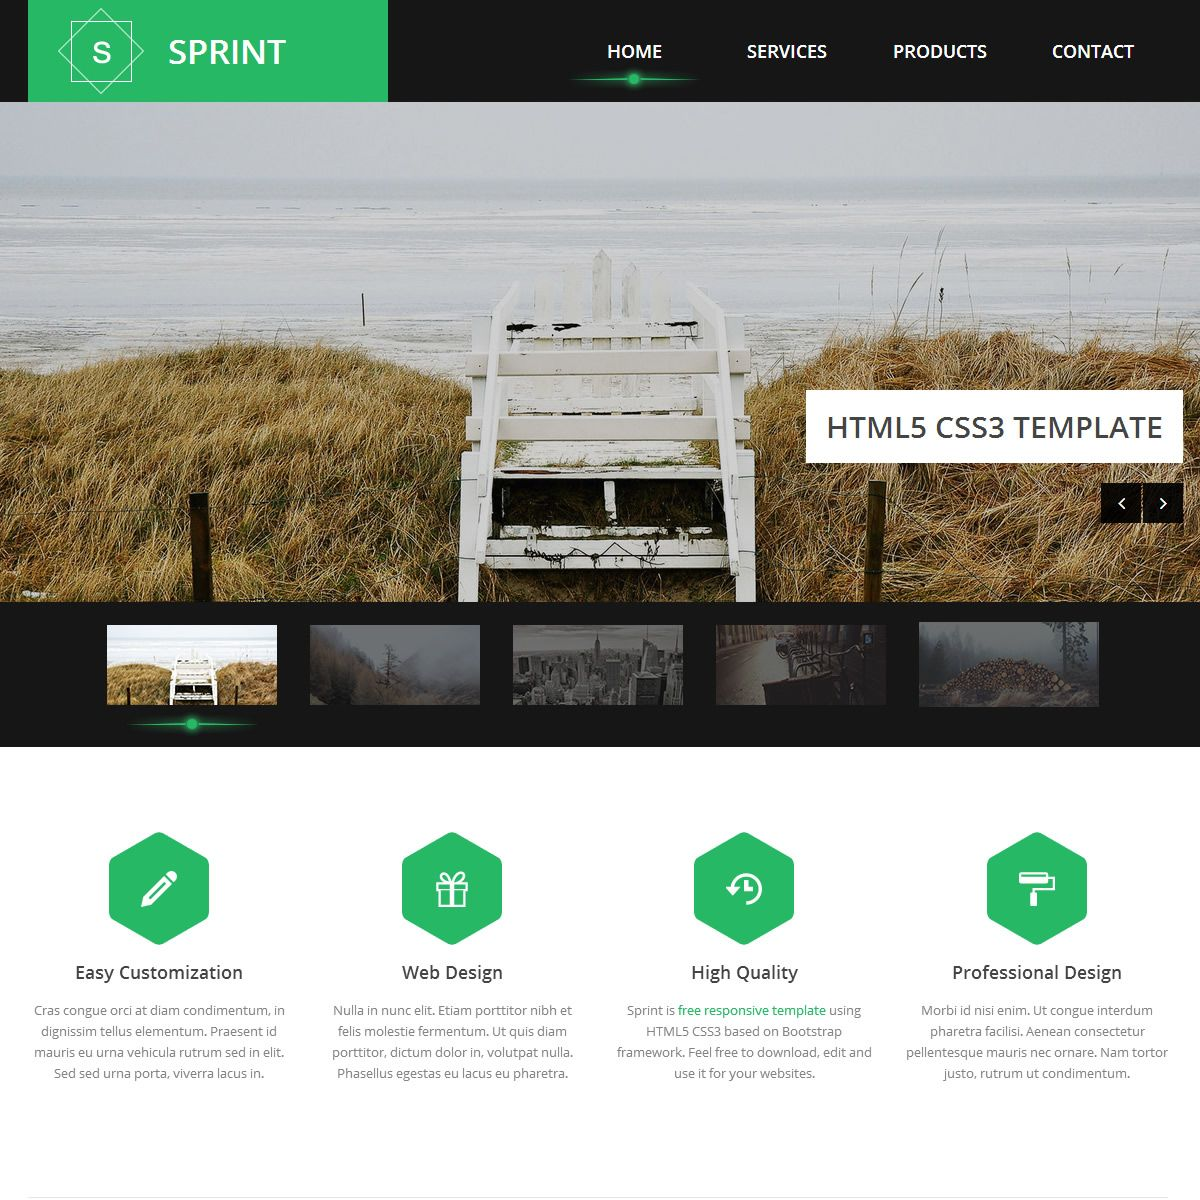 Website Layout Template Sprint Is Free Html5 Template On Responsive Bootstrap Framework